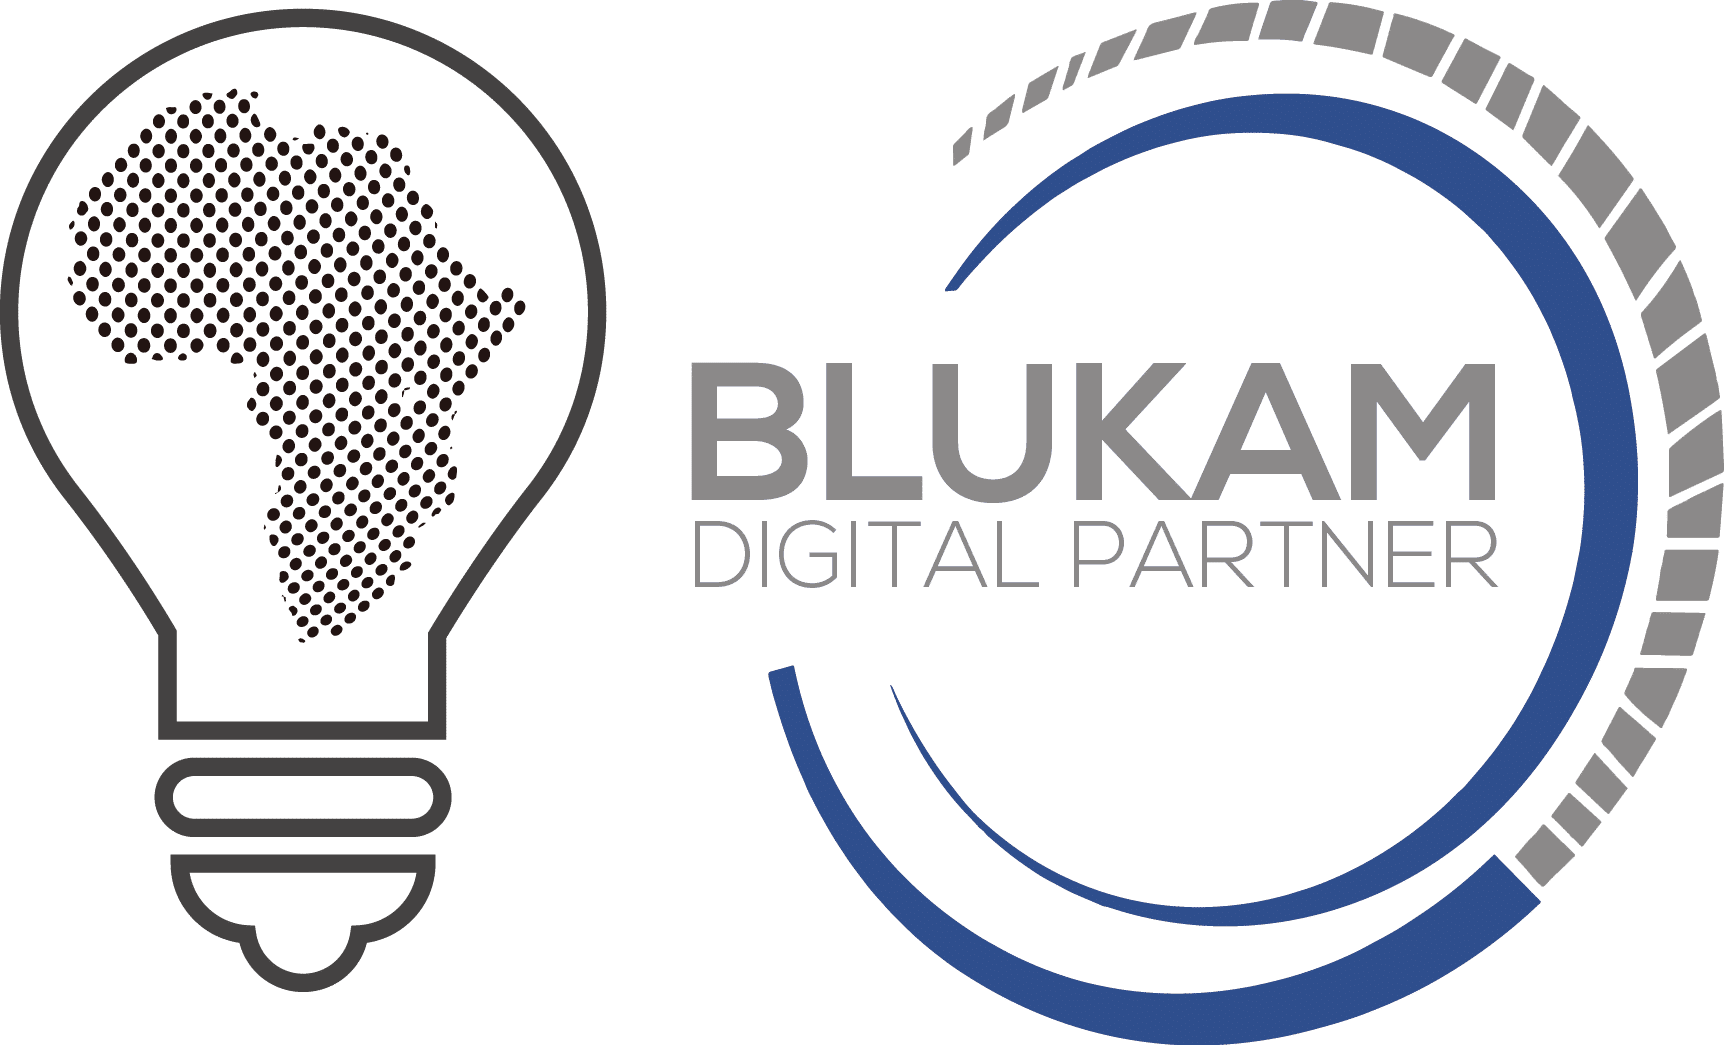 Blukam Digital Partner